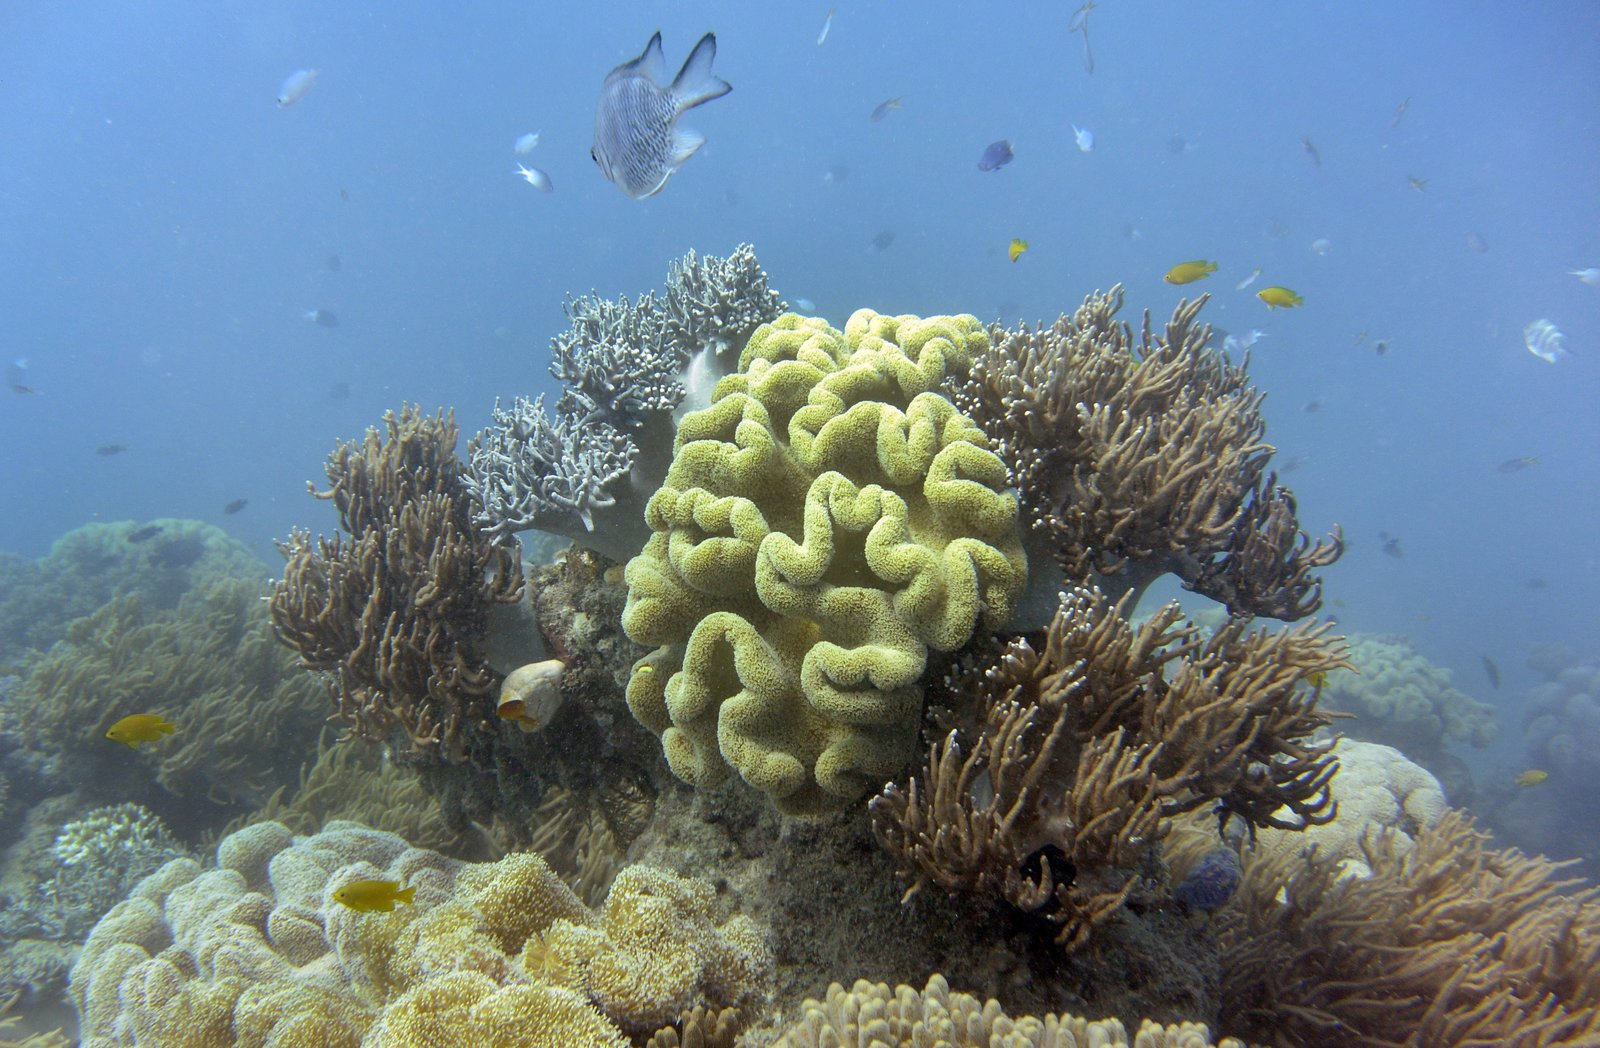 """The Australian federal government has downgraded its long-term outlook of the Great Barrier Reef from """"poor"""" (2014) to """"very poor"""" (2019), and it says that climate change is the most significant threat.   William West /AFP/Getty Images    https://www.npr.org/2019/08/30/755846052/australia-says-great-barrier-reef-has-very-poor-outlook-climate-change-to-blame"""